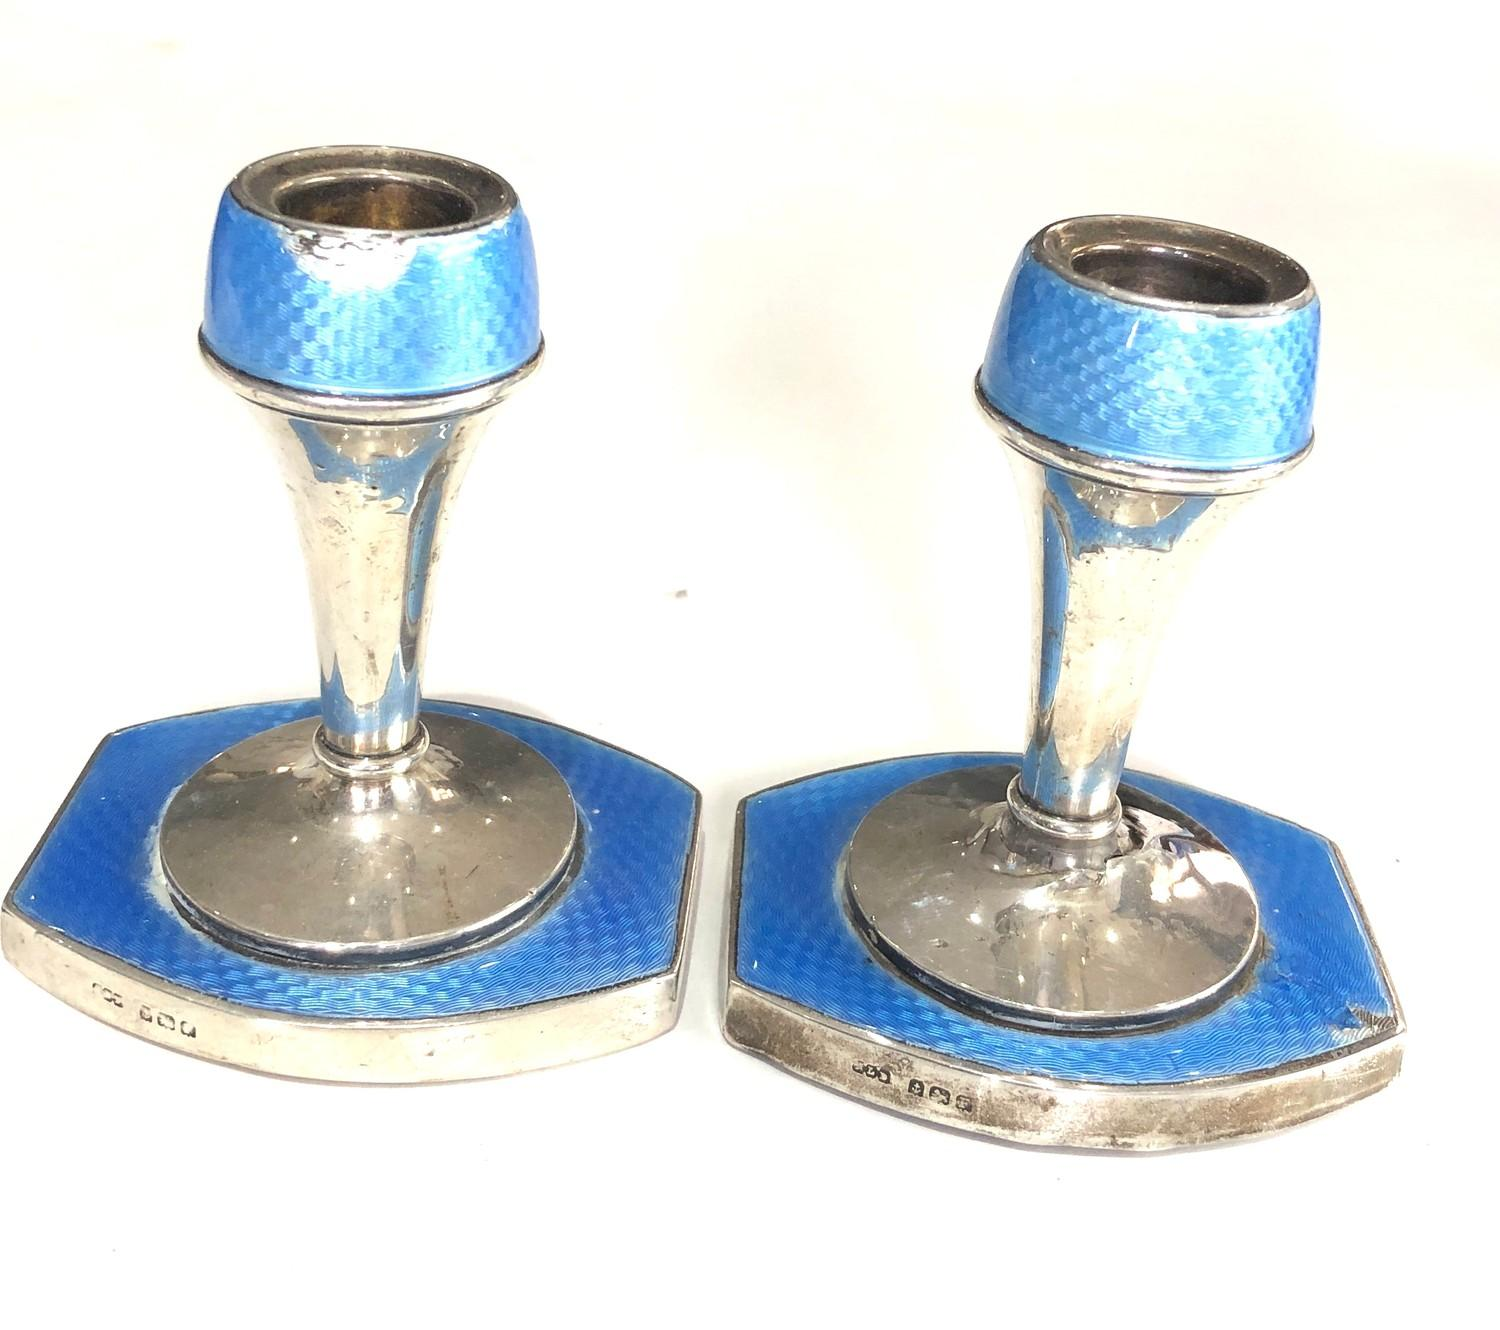 Pair of antique silver and enamel candlesticks measure approx height 9.3cm by 8cm wide filled